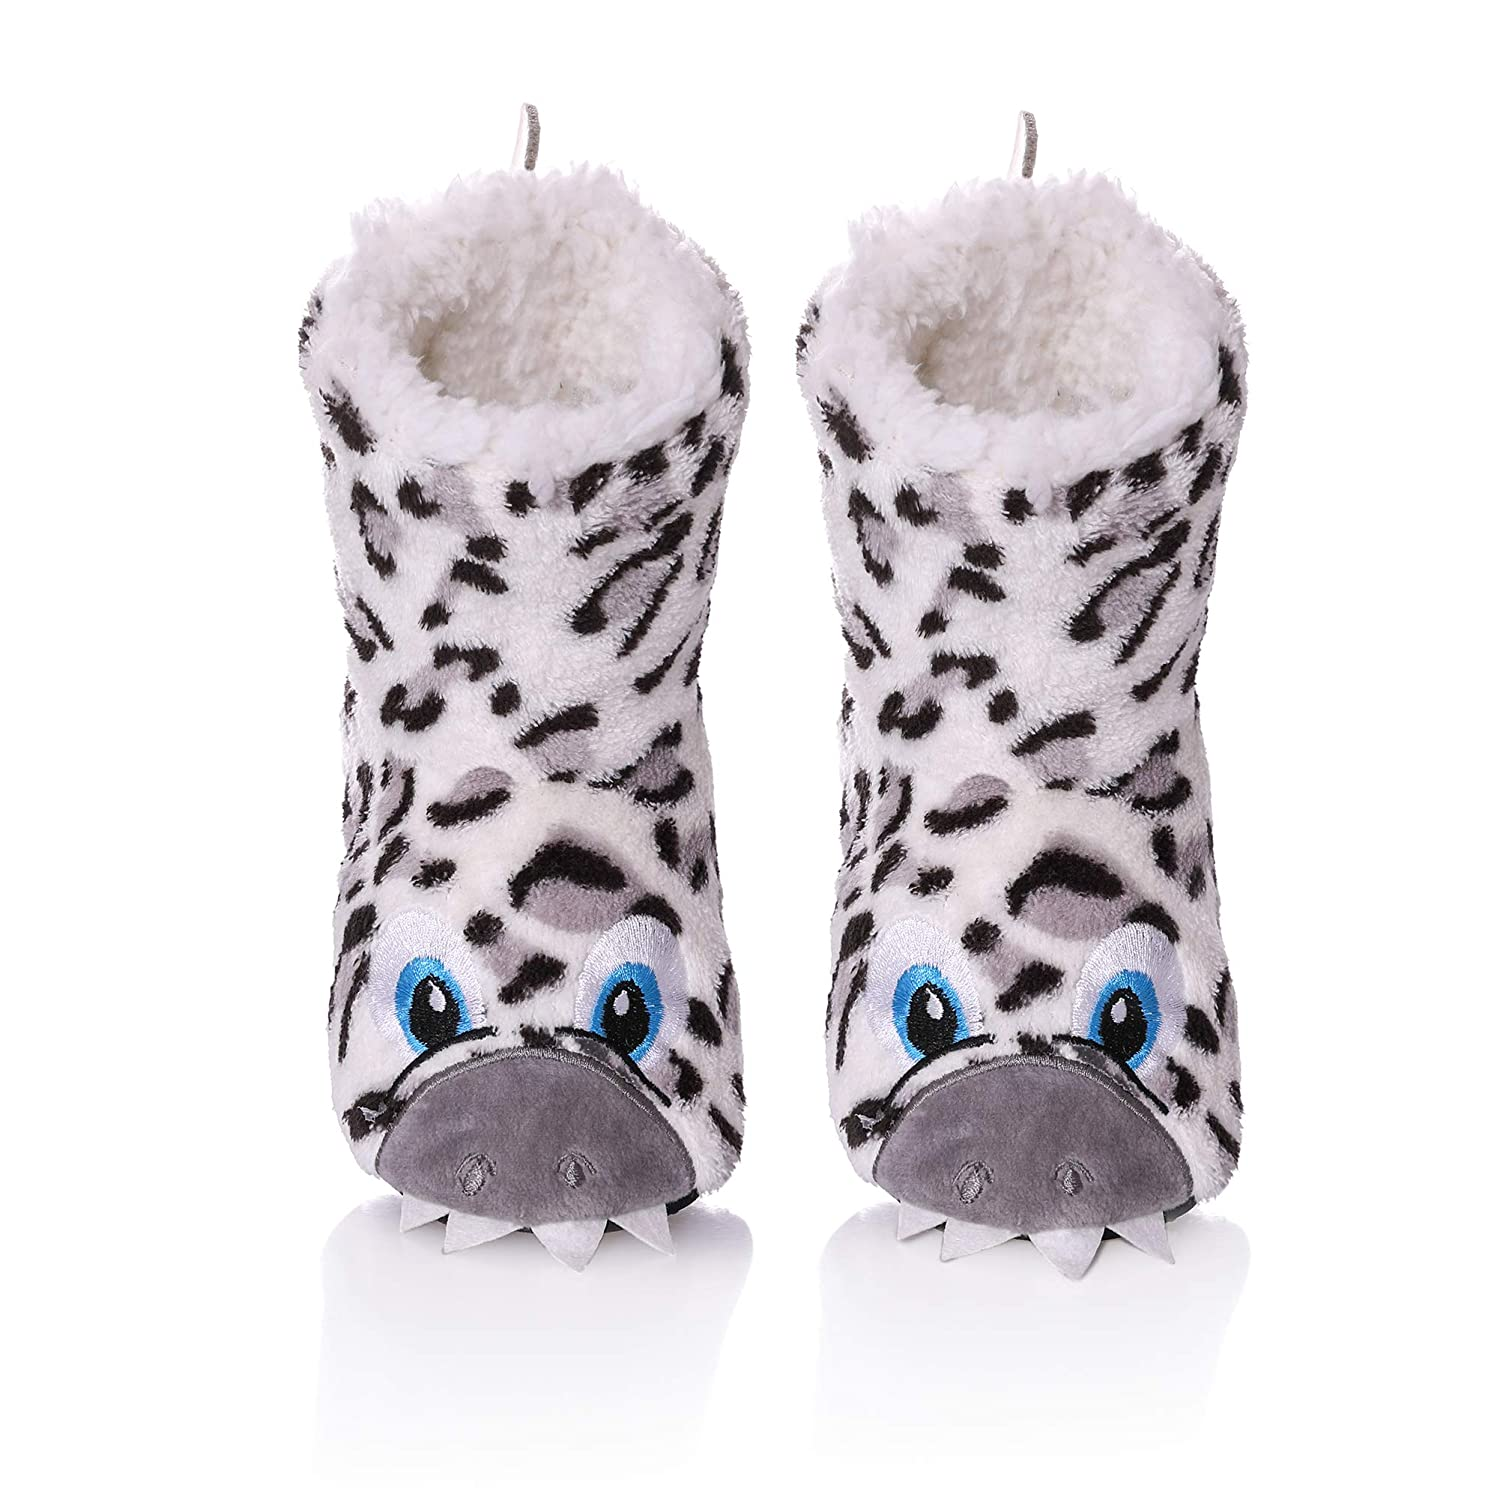 TRUEHAN Unisex 3D Cute Animal Lightweight Toddler Kids Bootie Slippers for Girls Boys Indoor//Outdoor Plush Soft Warm Non-Slip House Shoes